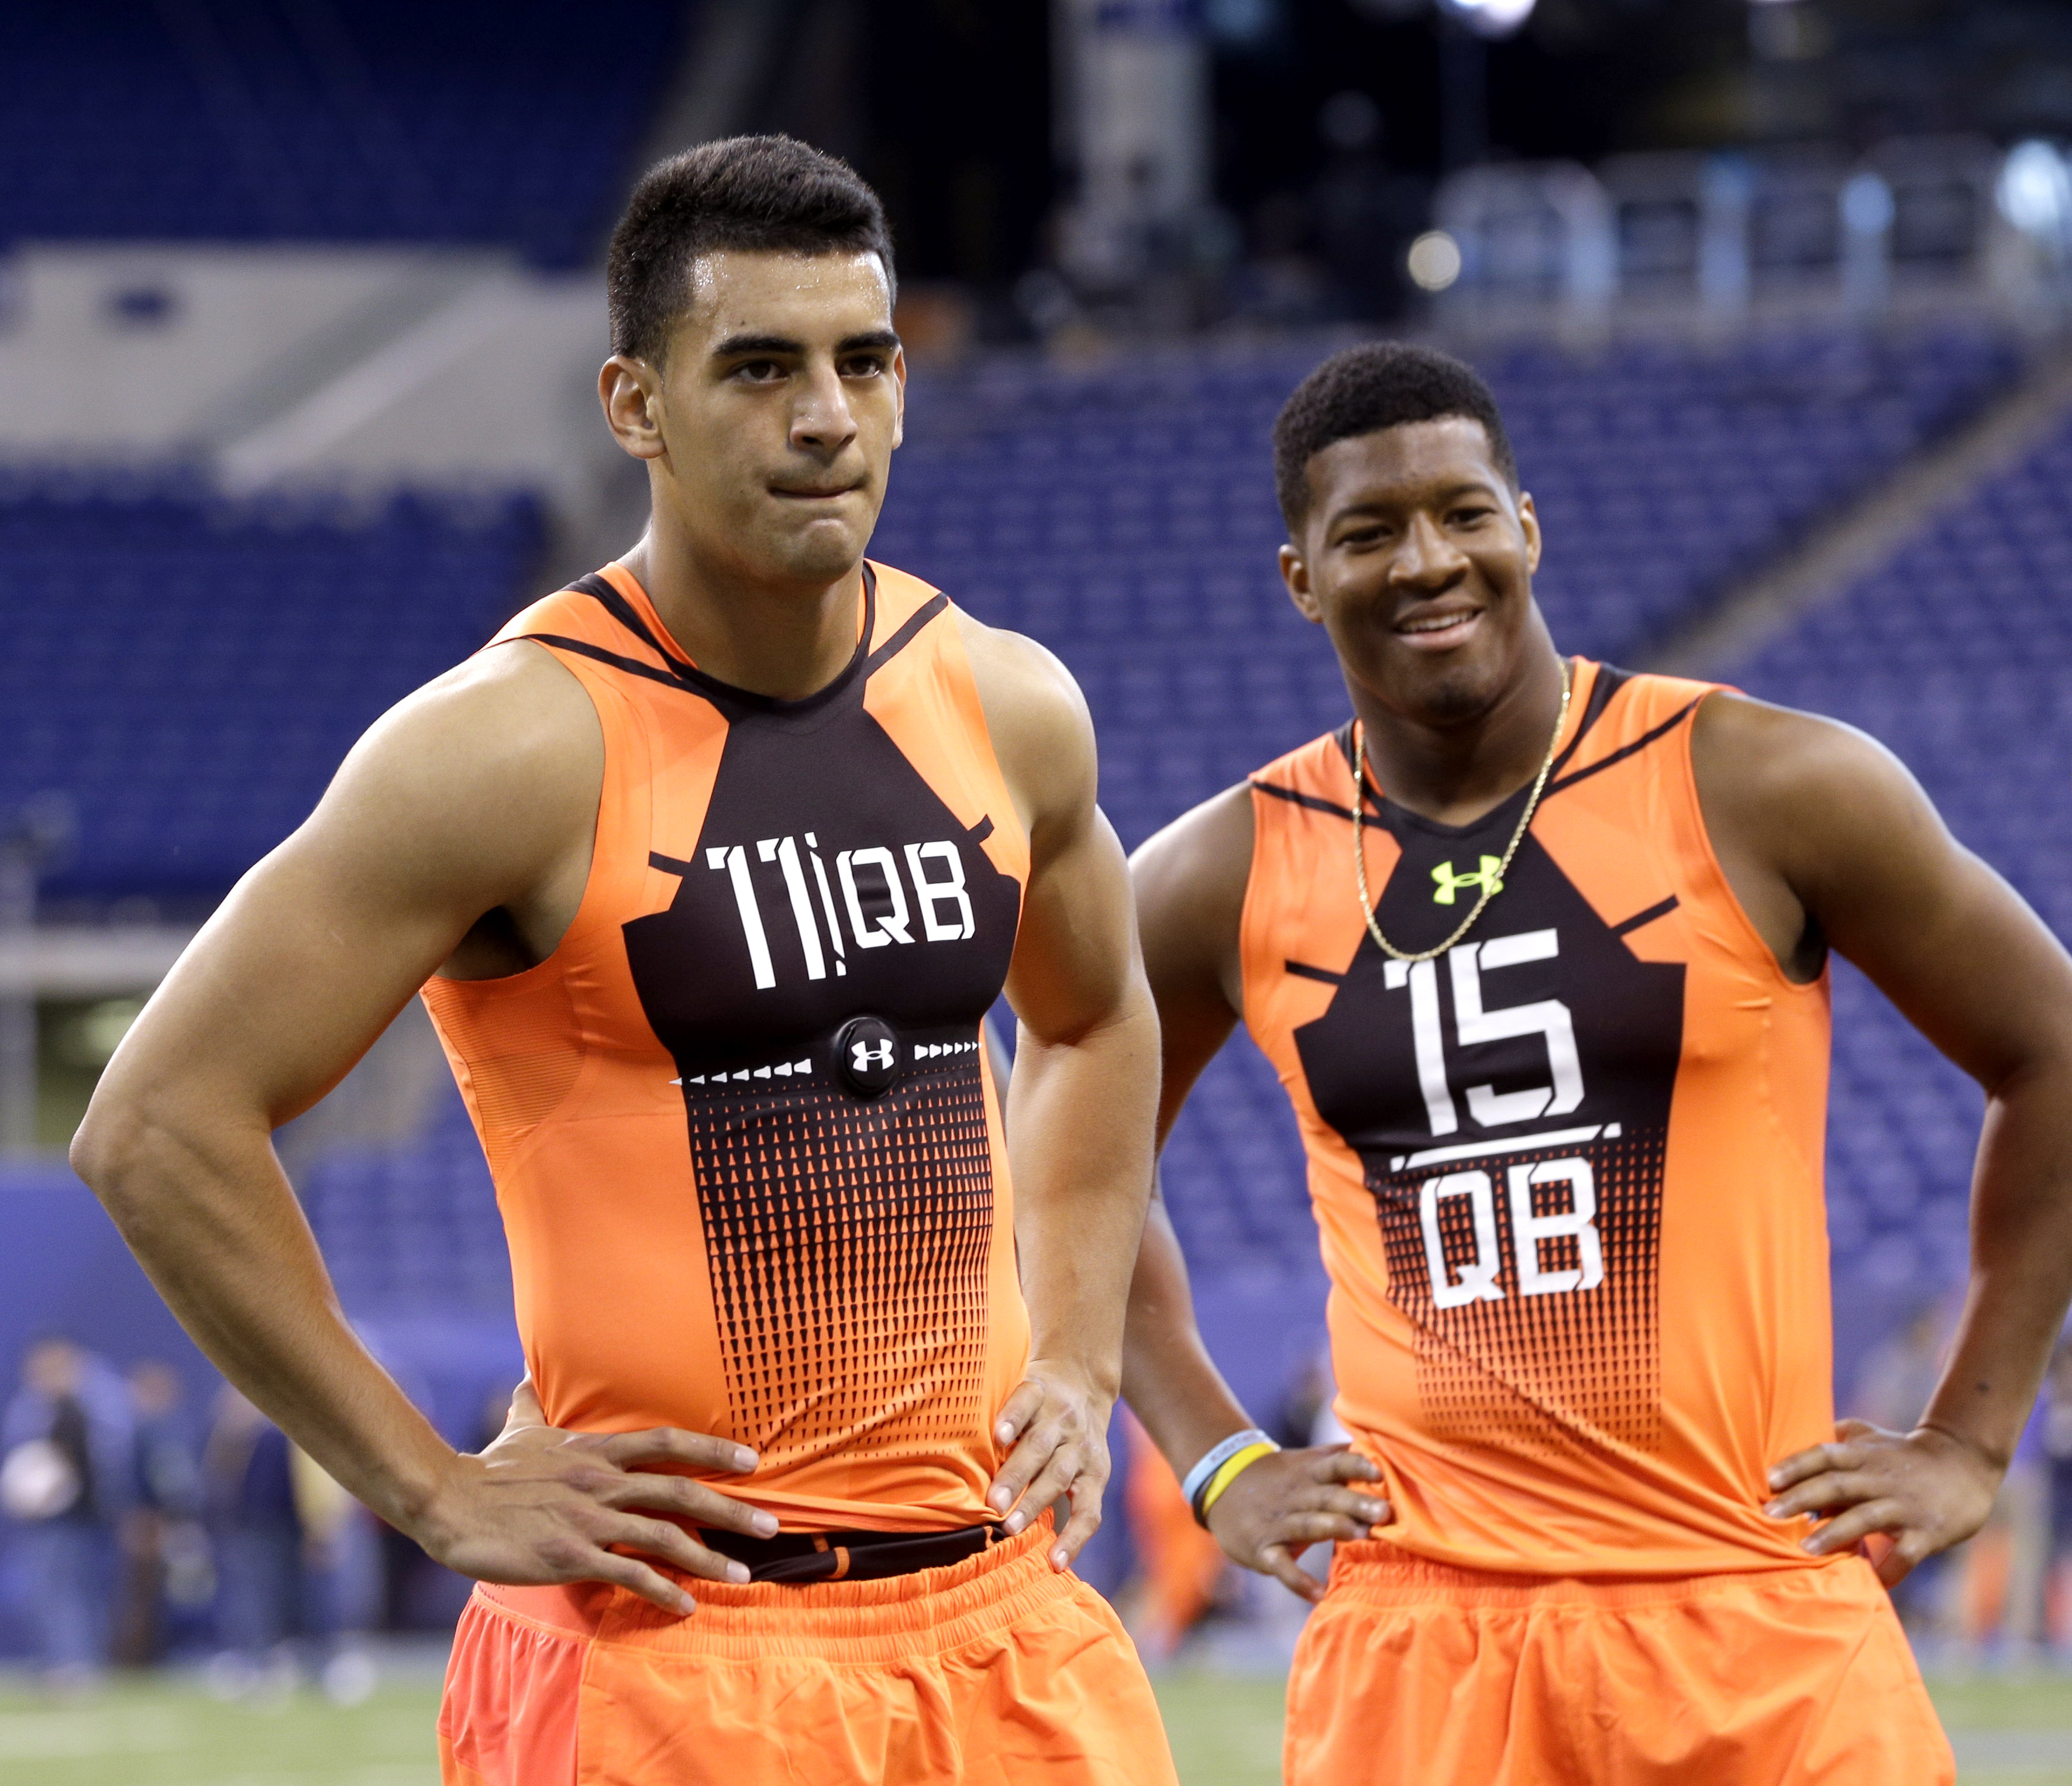 FILE - In this Feb. 21, 2015, file photo, then-Oregon quarterback Marcus Mariota (11) and then-Florida State quarterback Jameis Winston (15) wait to run a drill at the NFL football scouting combine in Indianapolis. It's time for Winston and Mariota to sho